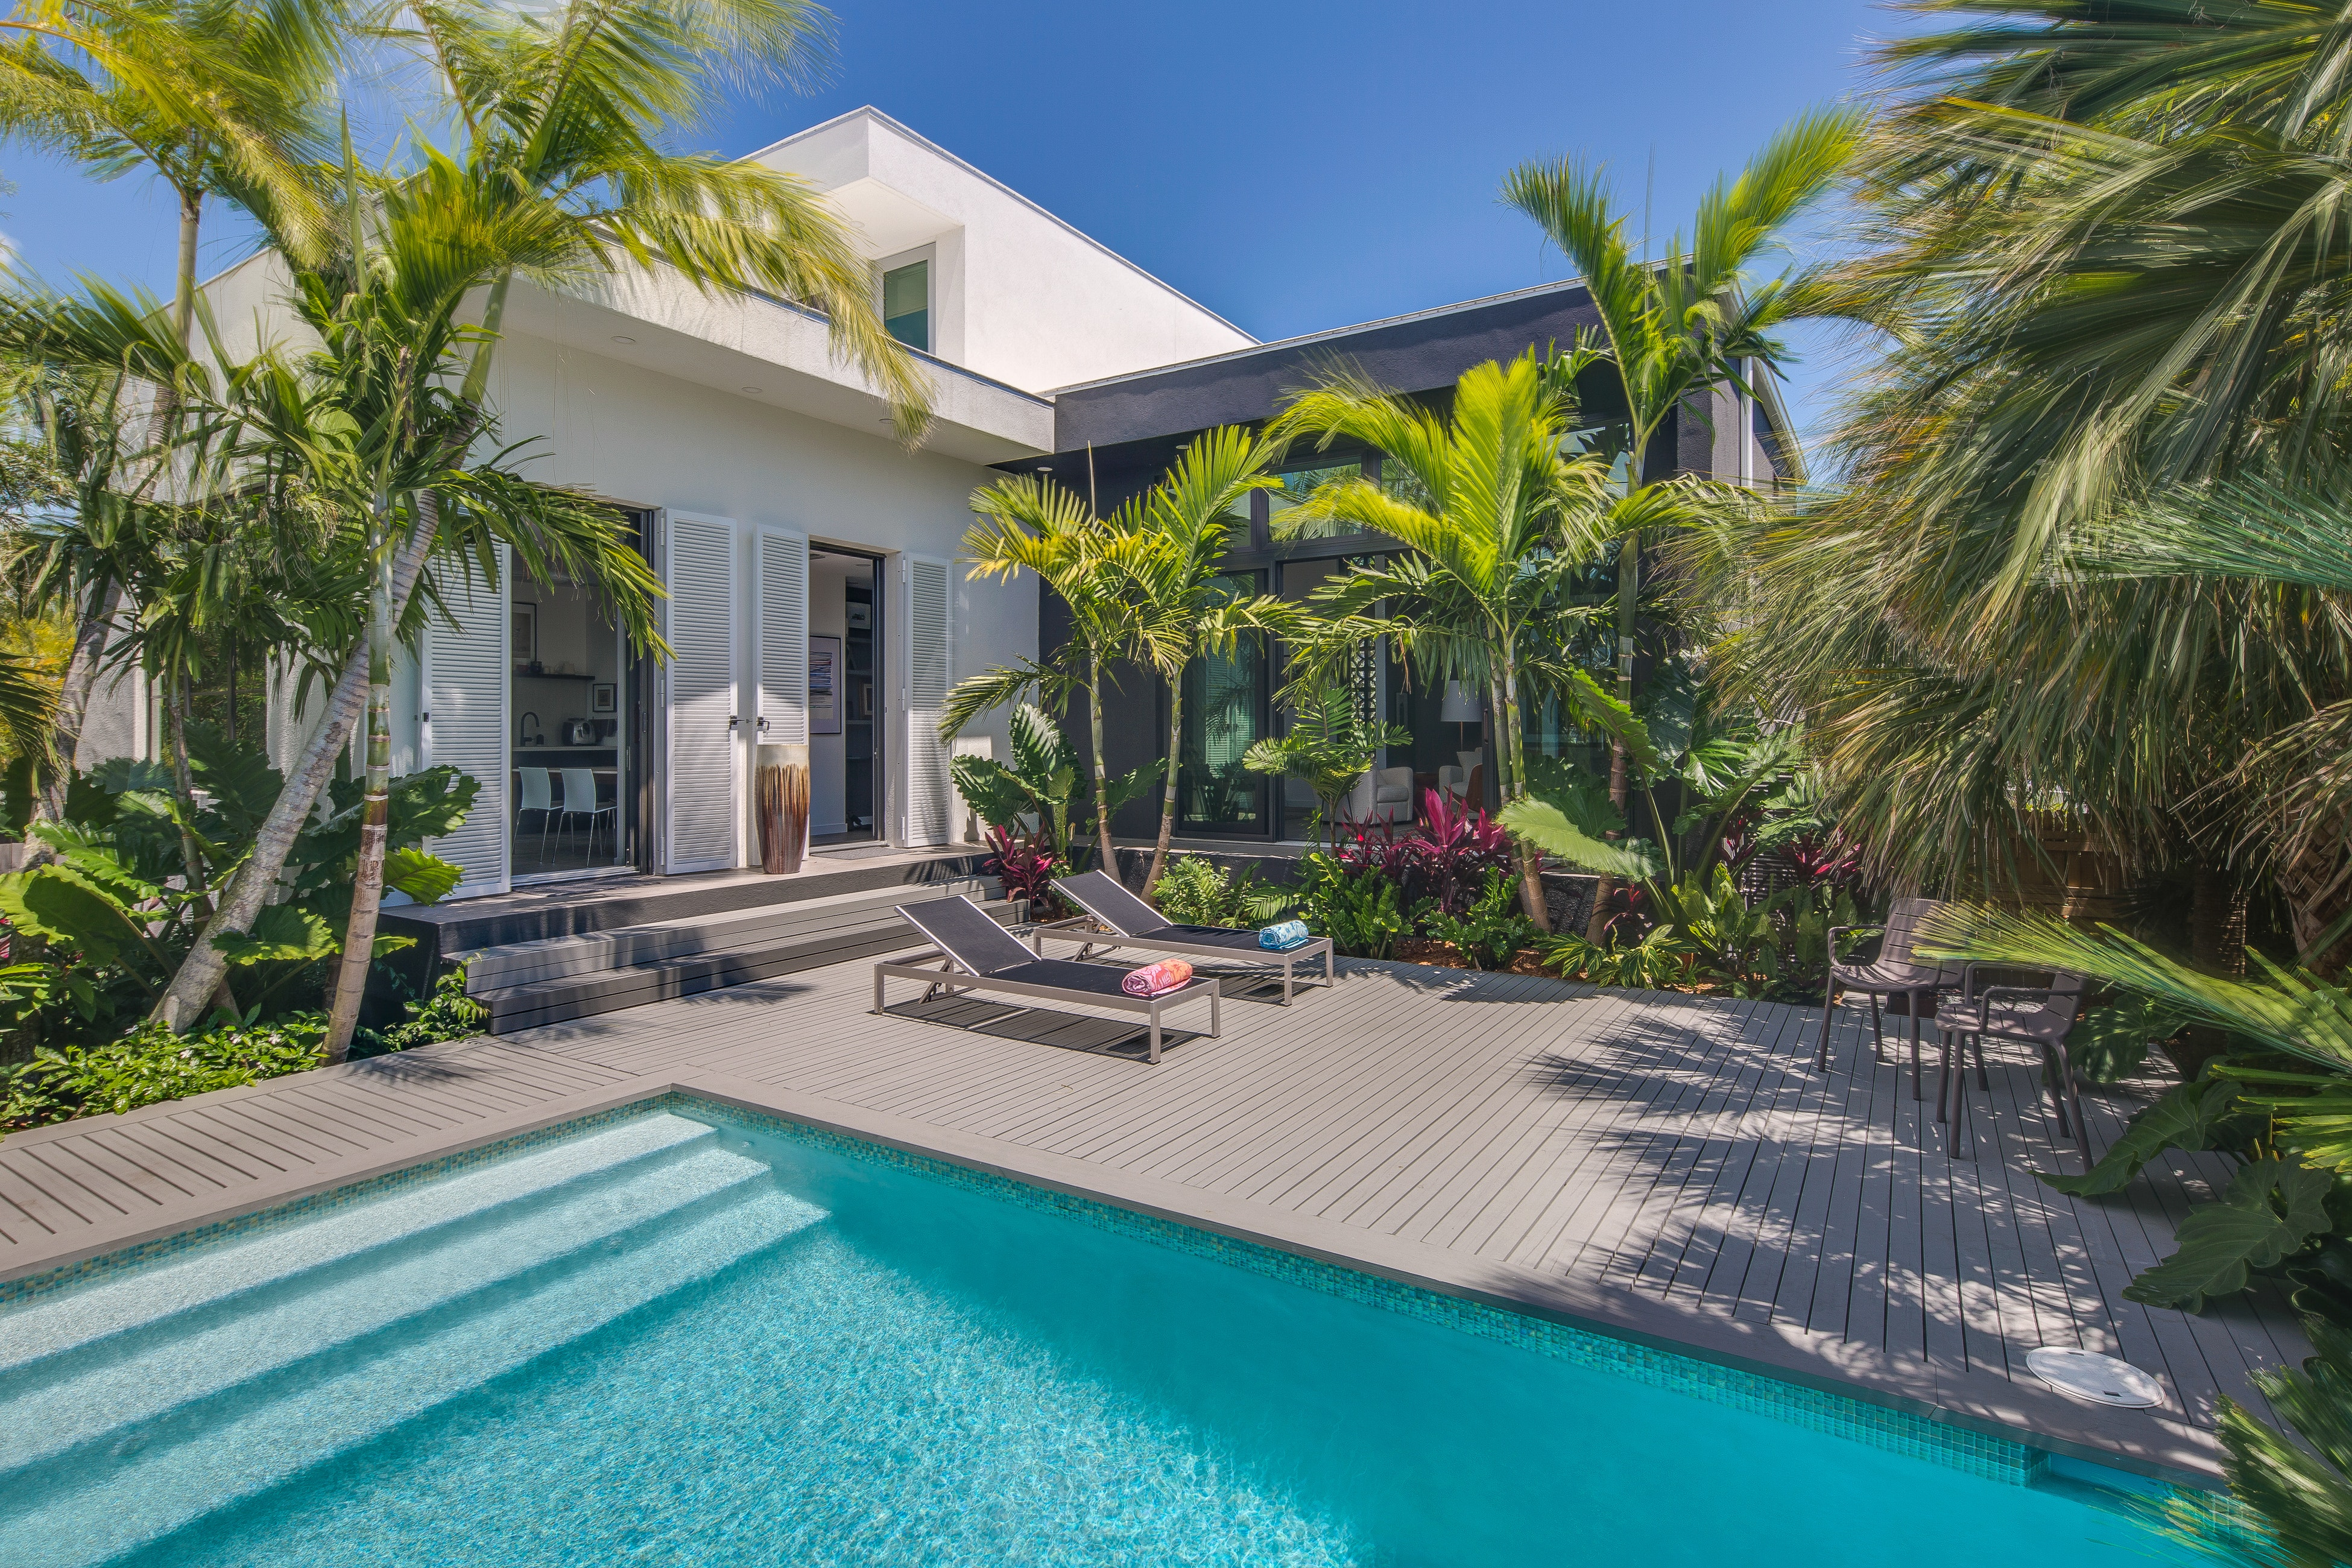 House to rent in the florida keys